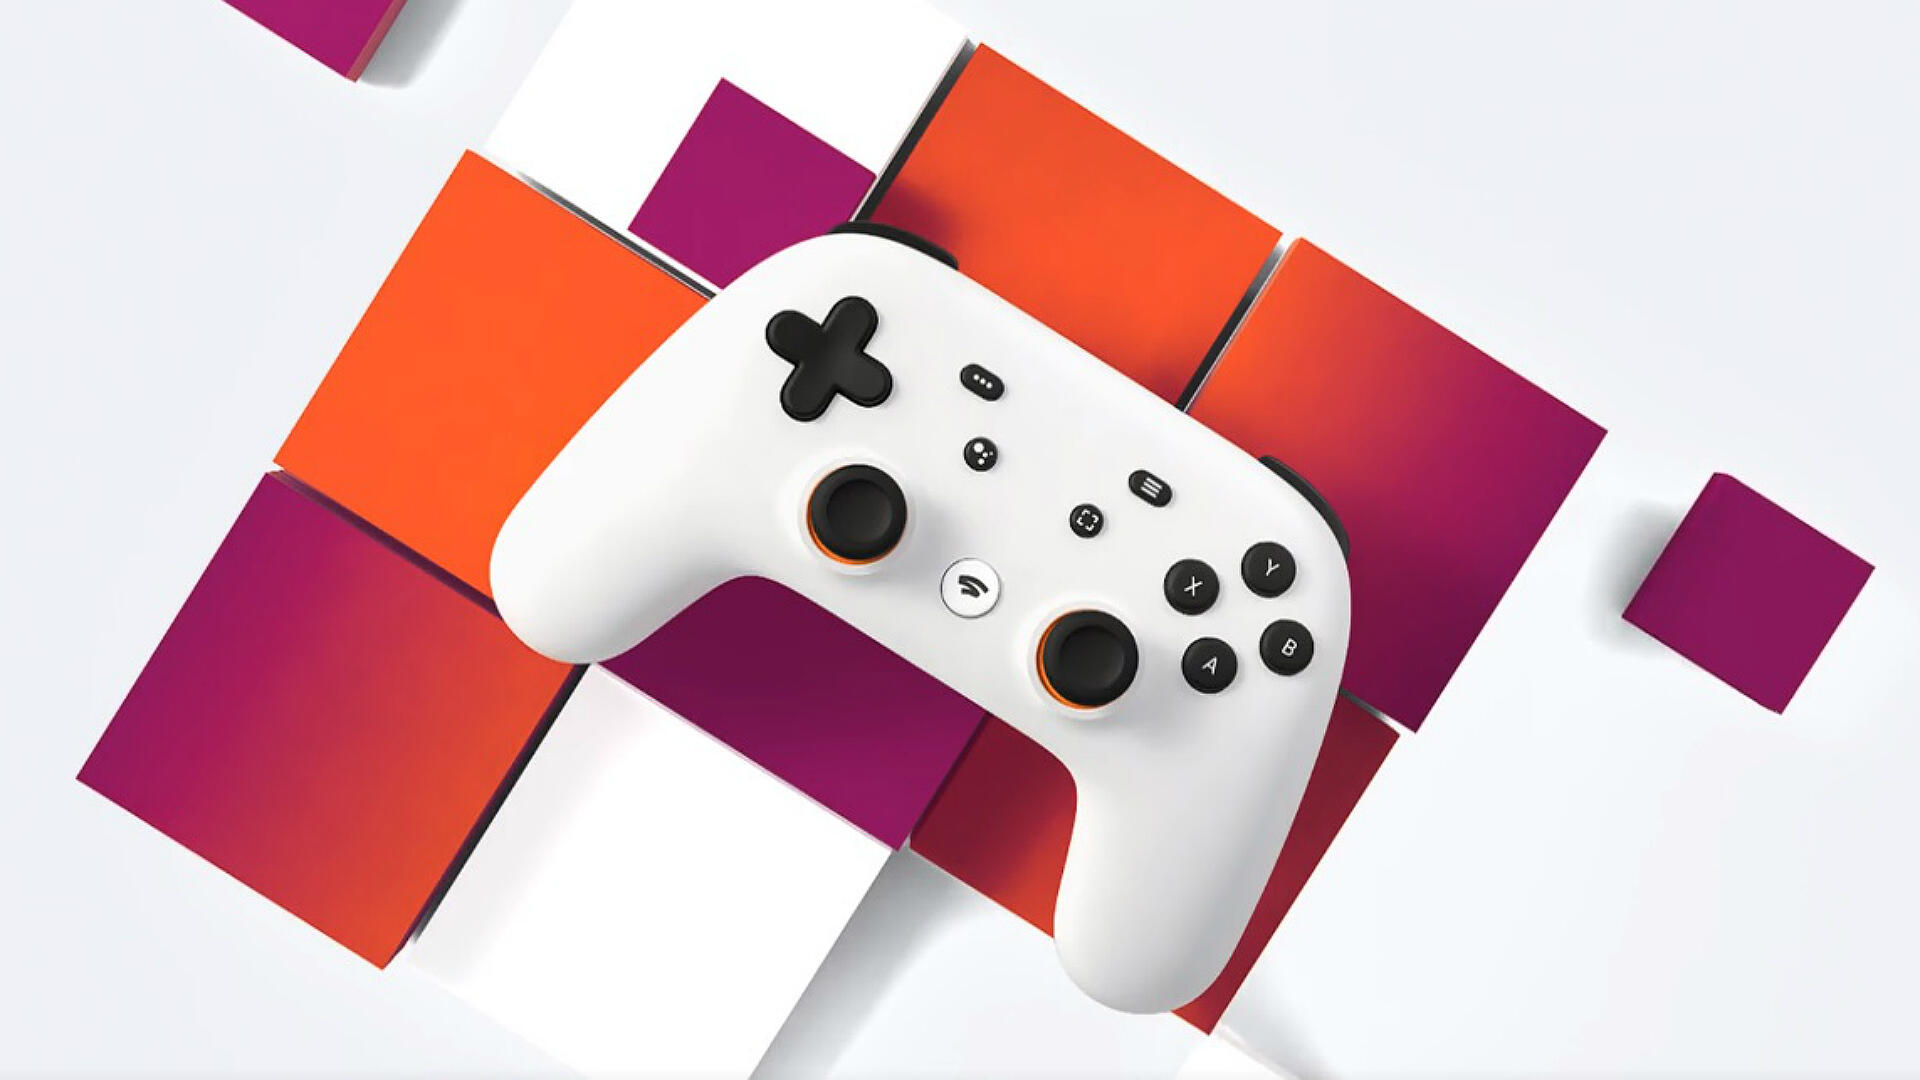 Google Stadia, Epic, Unions: What We Learned From an Eventful Week in Games